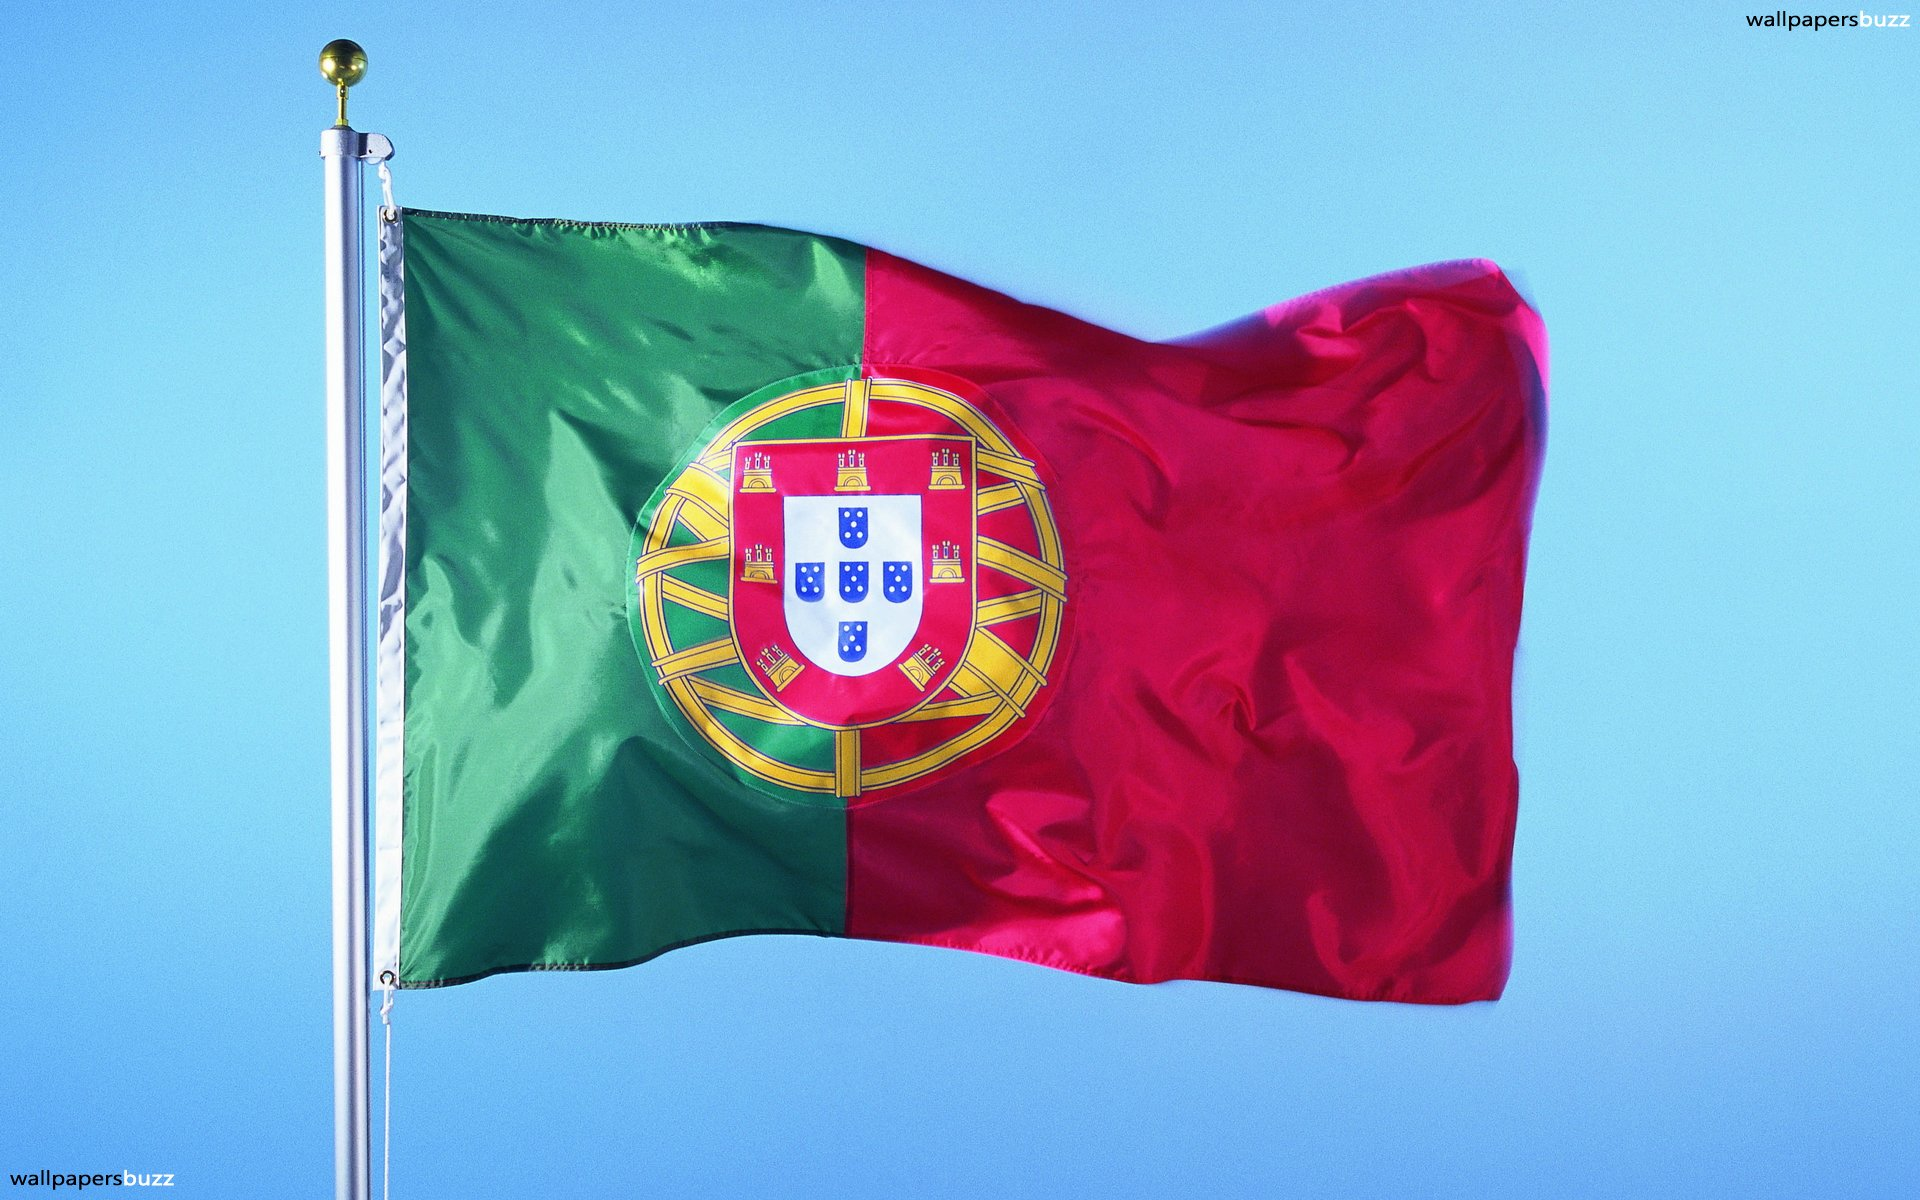 Flag Of Portugal Backgrounds, Compatible - PC, Mobile, Gadgets  1920x1200 px